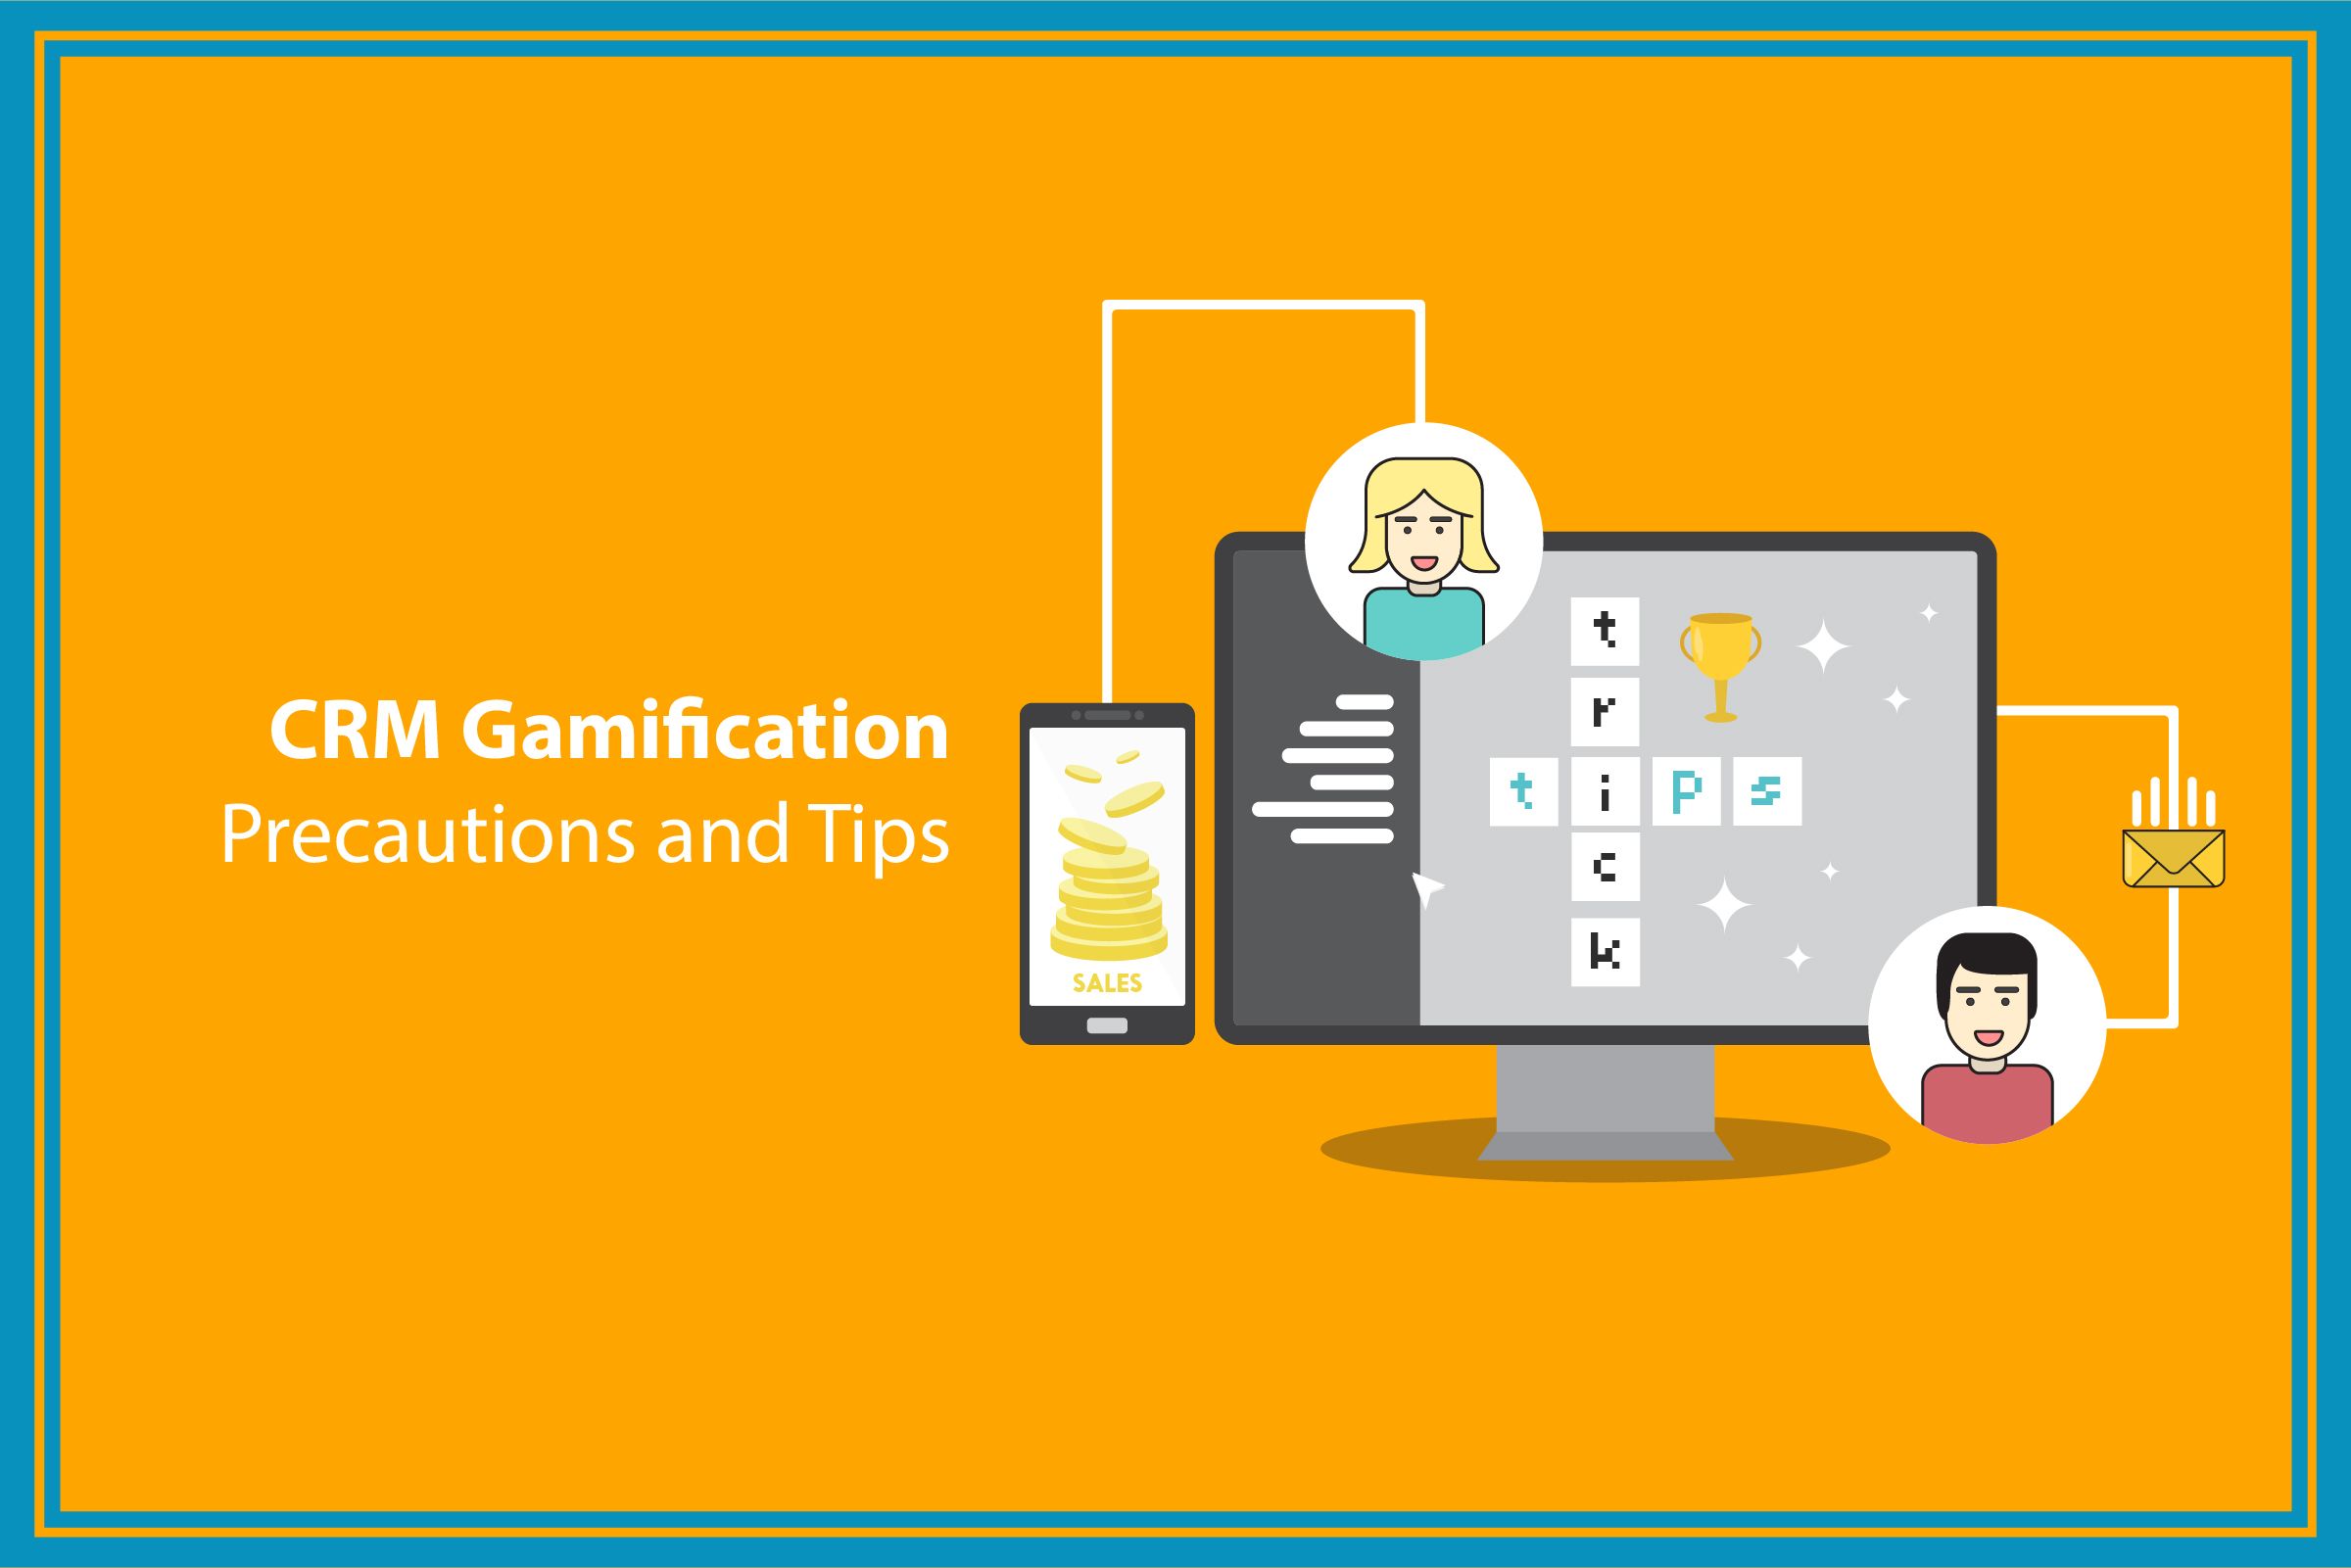 Avoiding CRM Gamification Risks and Mistakes